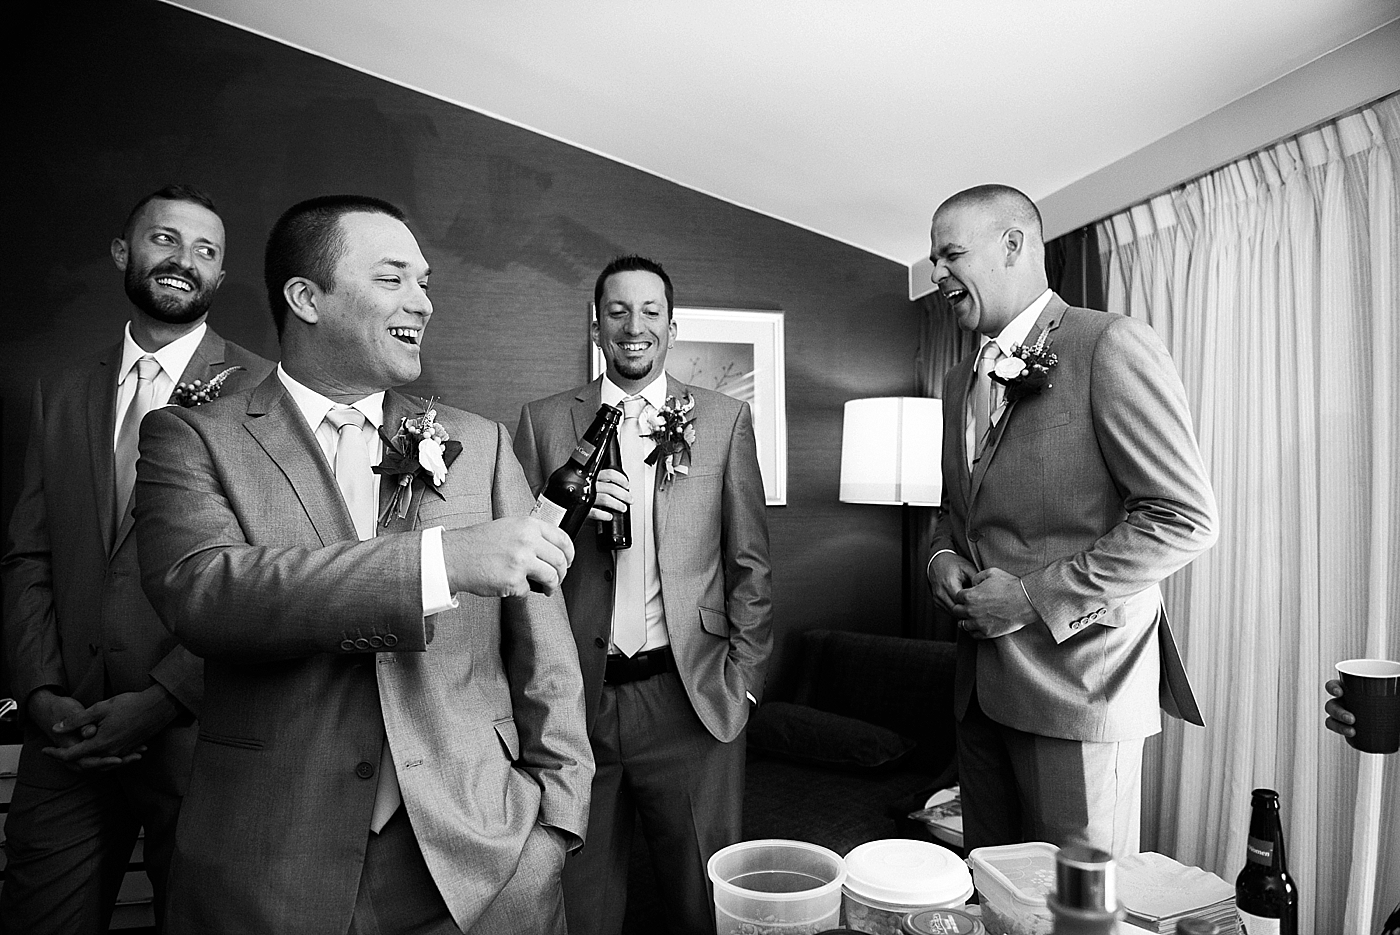 mt-washington-mill-baltimore-wedding-kirsten-marie-photography_1486